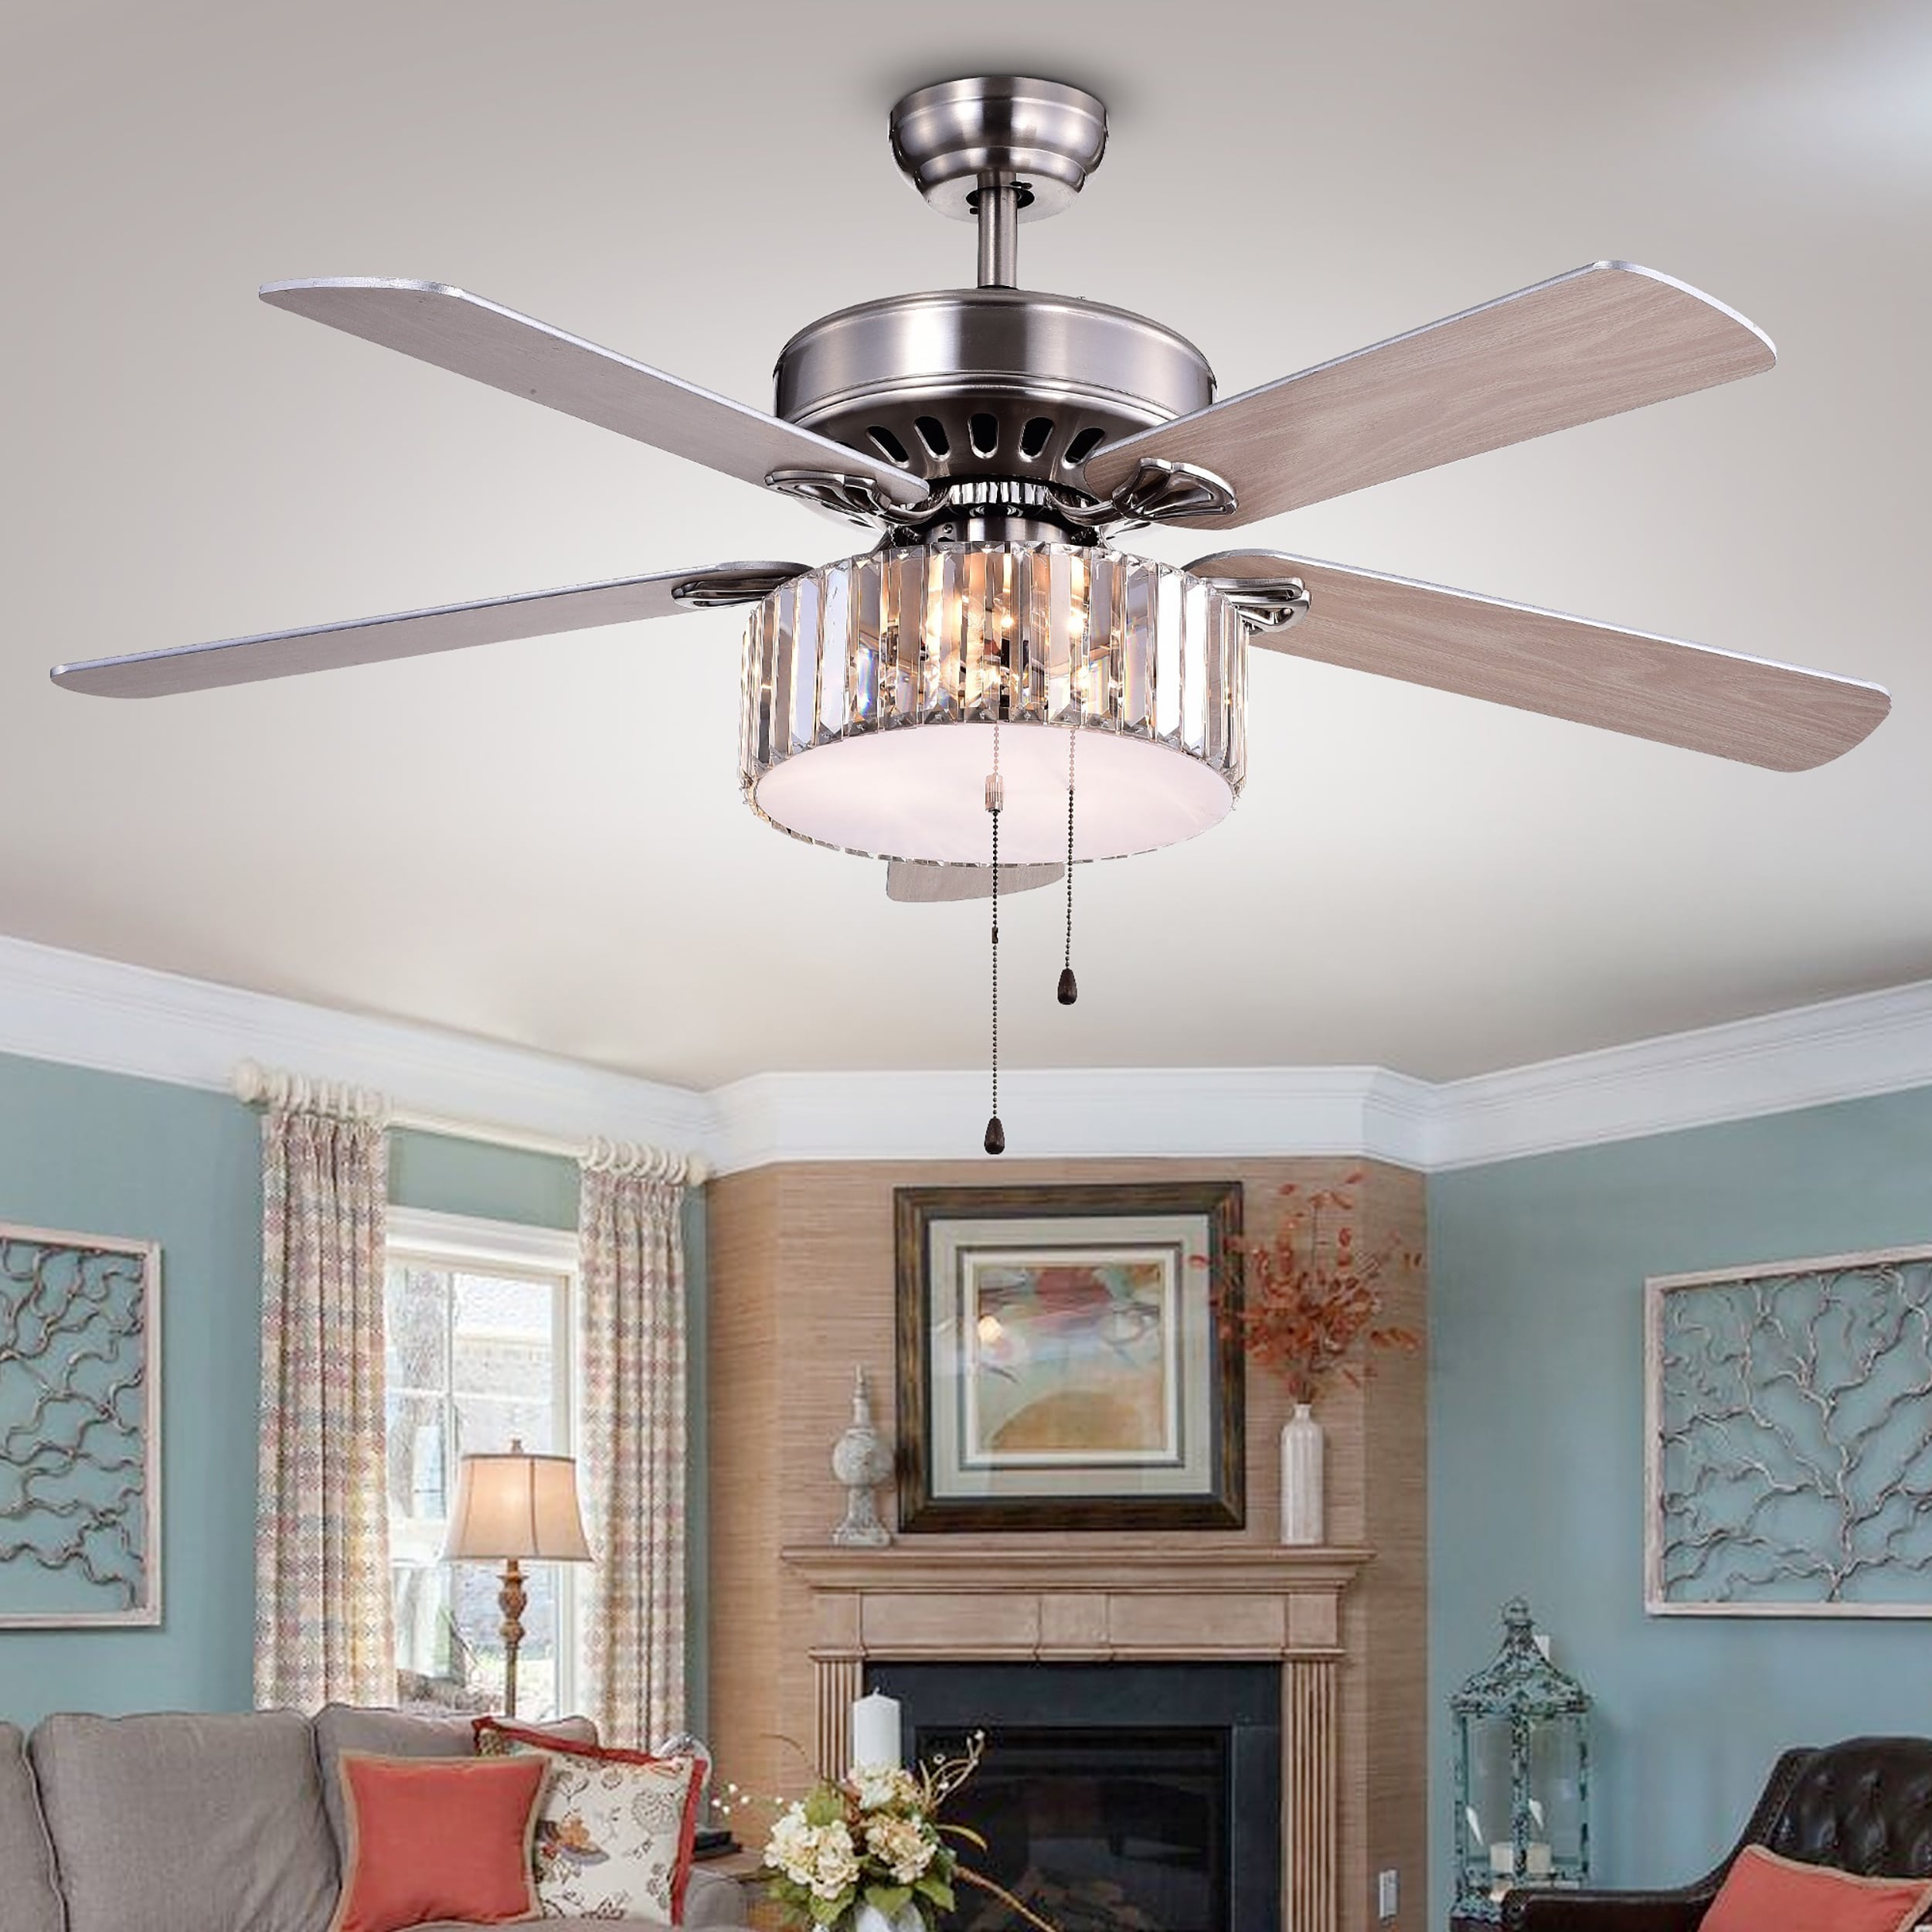 50 60 Inches Ceiling Fans For Less